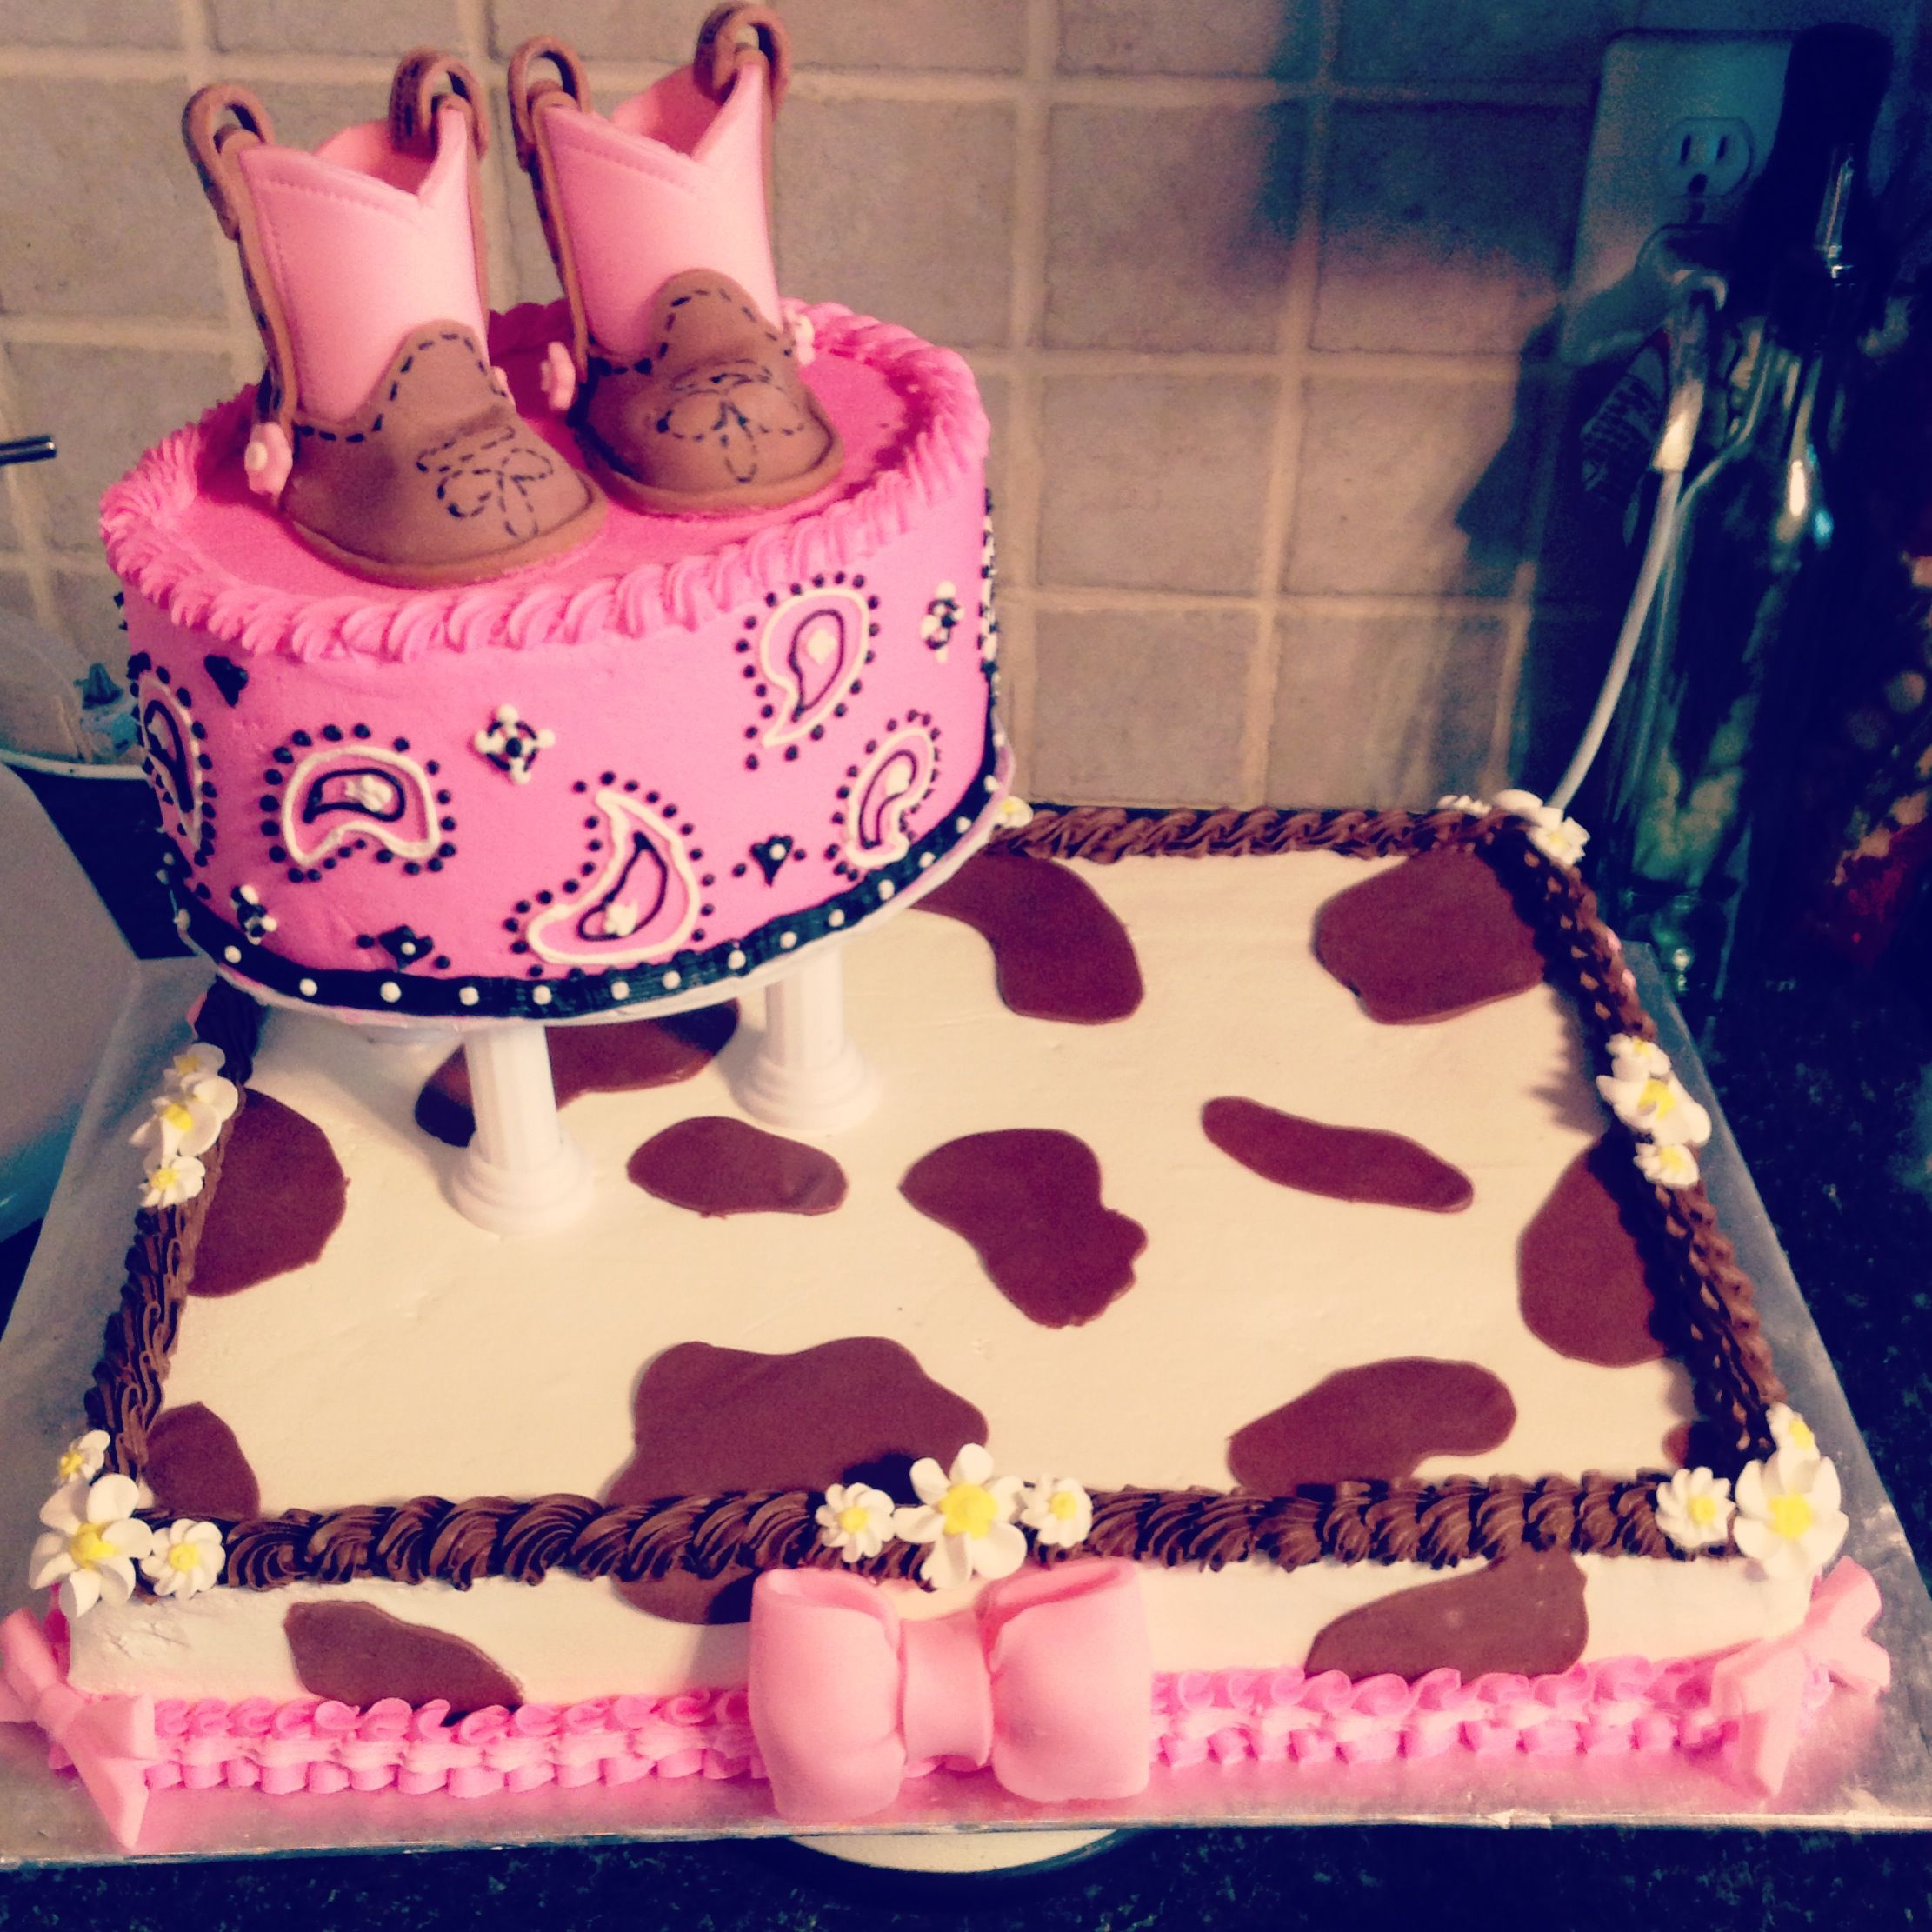 cowgirl baby shower cake buttercream and fondant decorations.